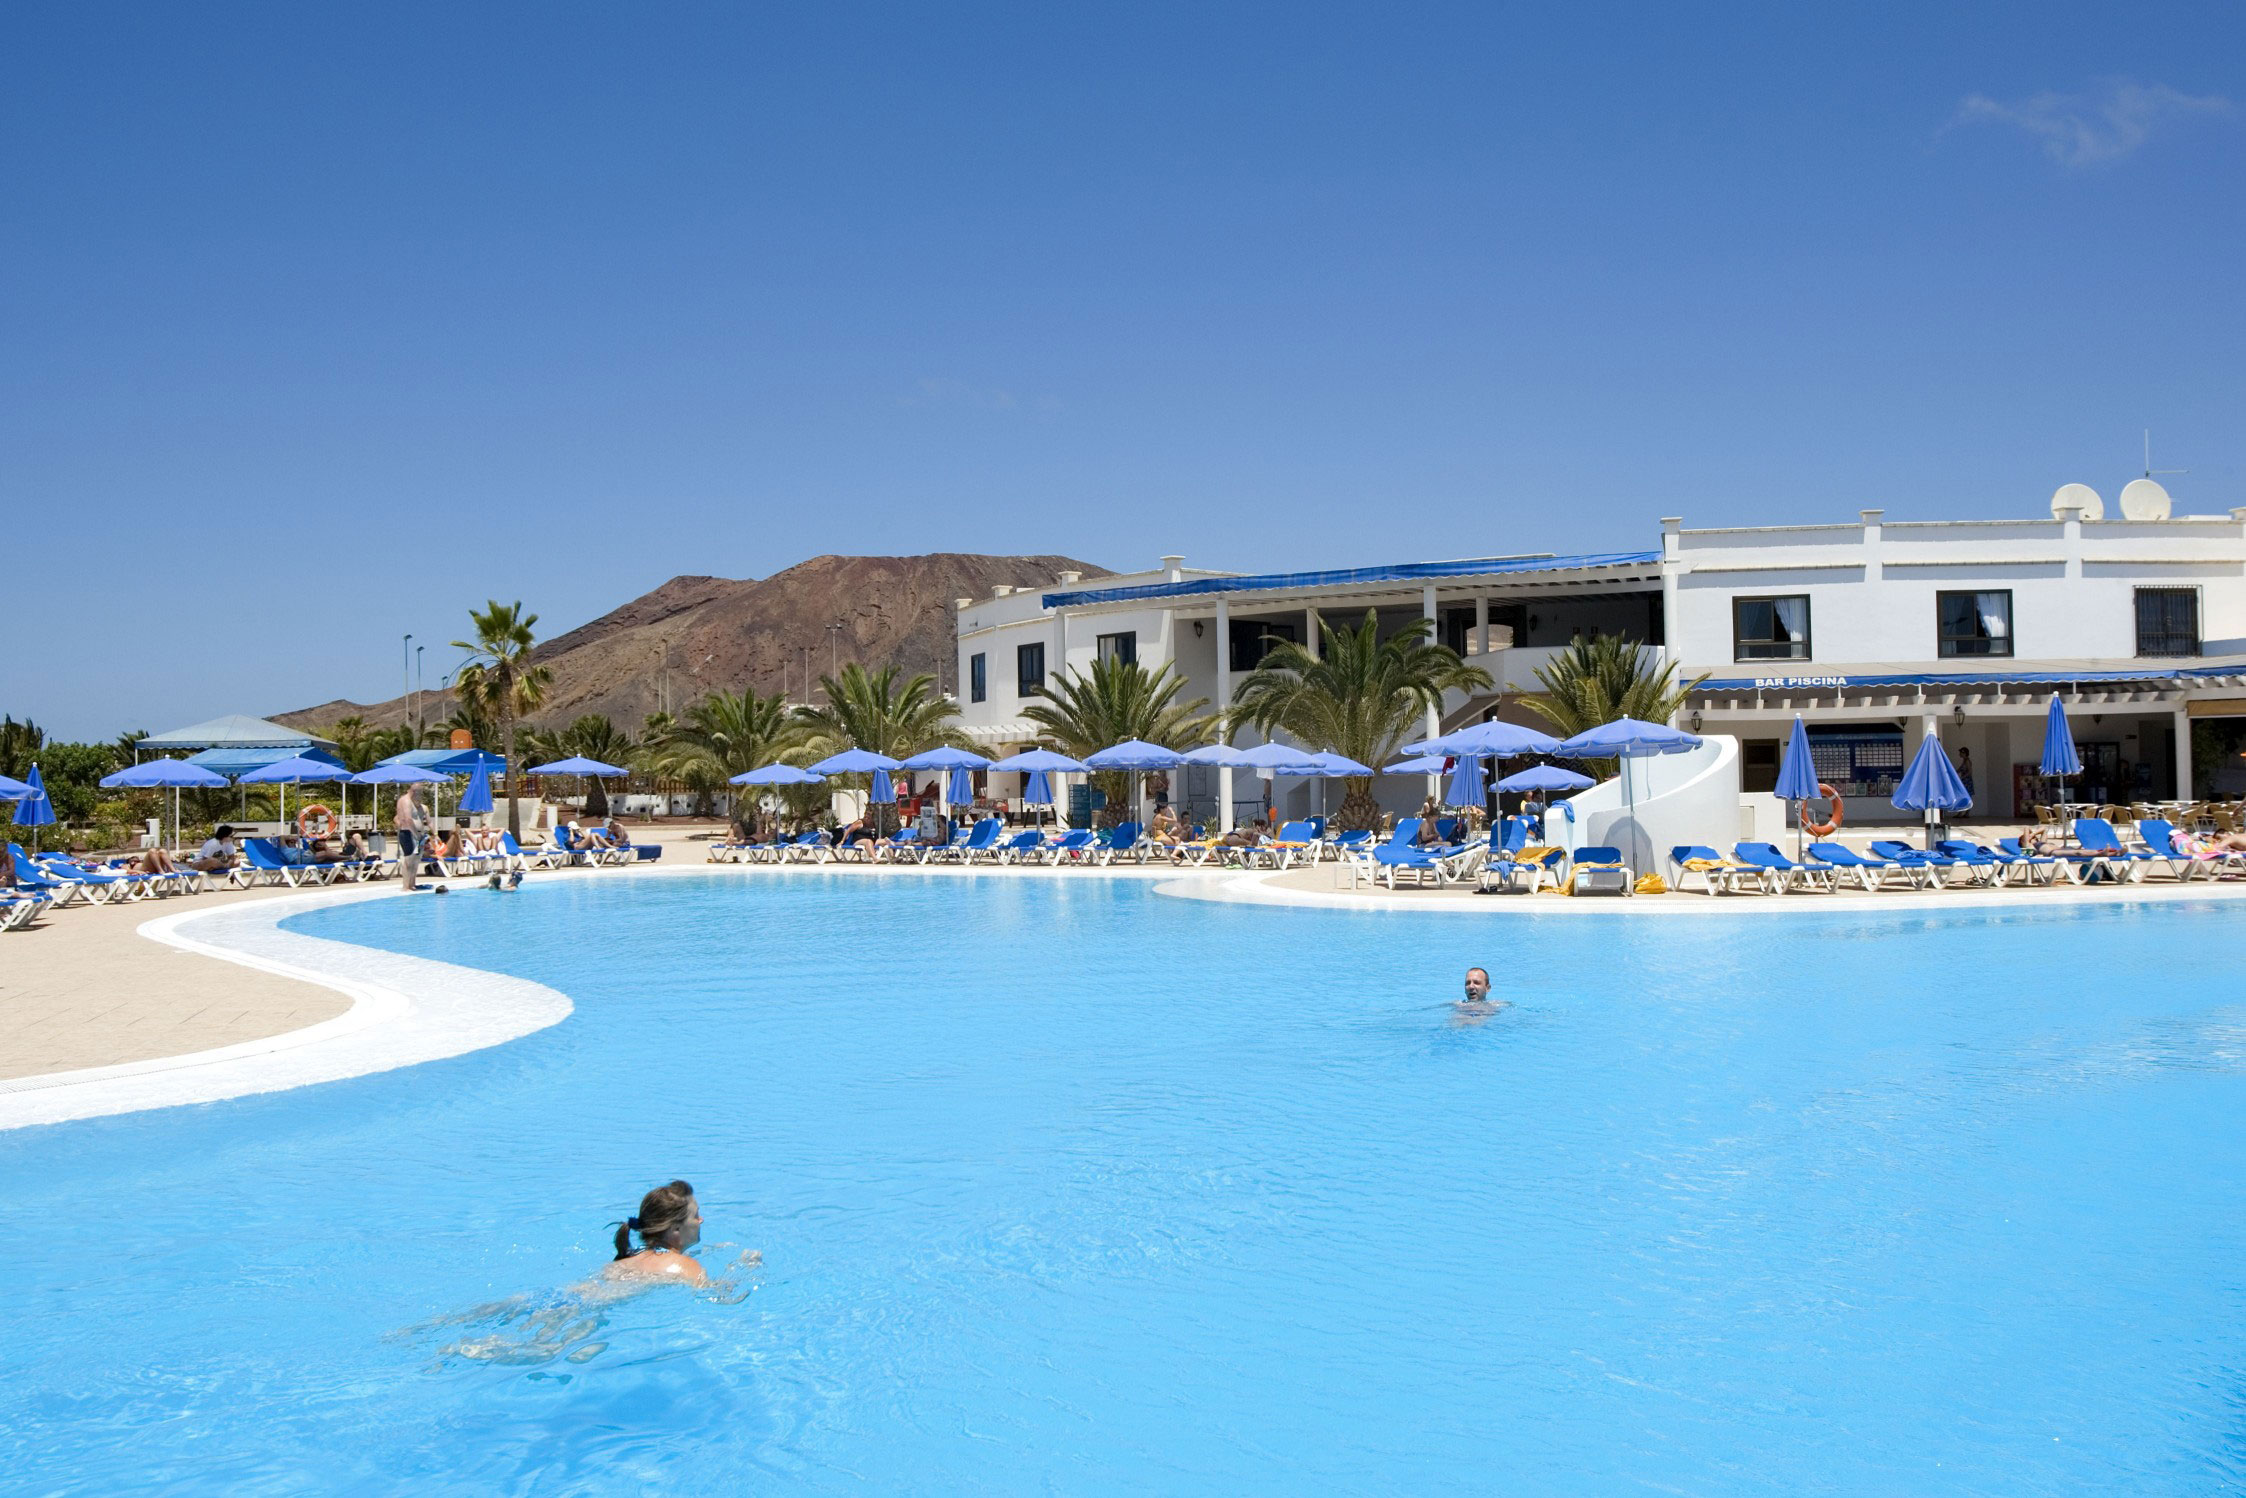 Hotel Hl Rio Playa Blanca All Inclusive